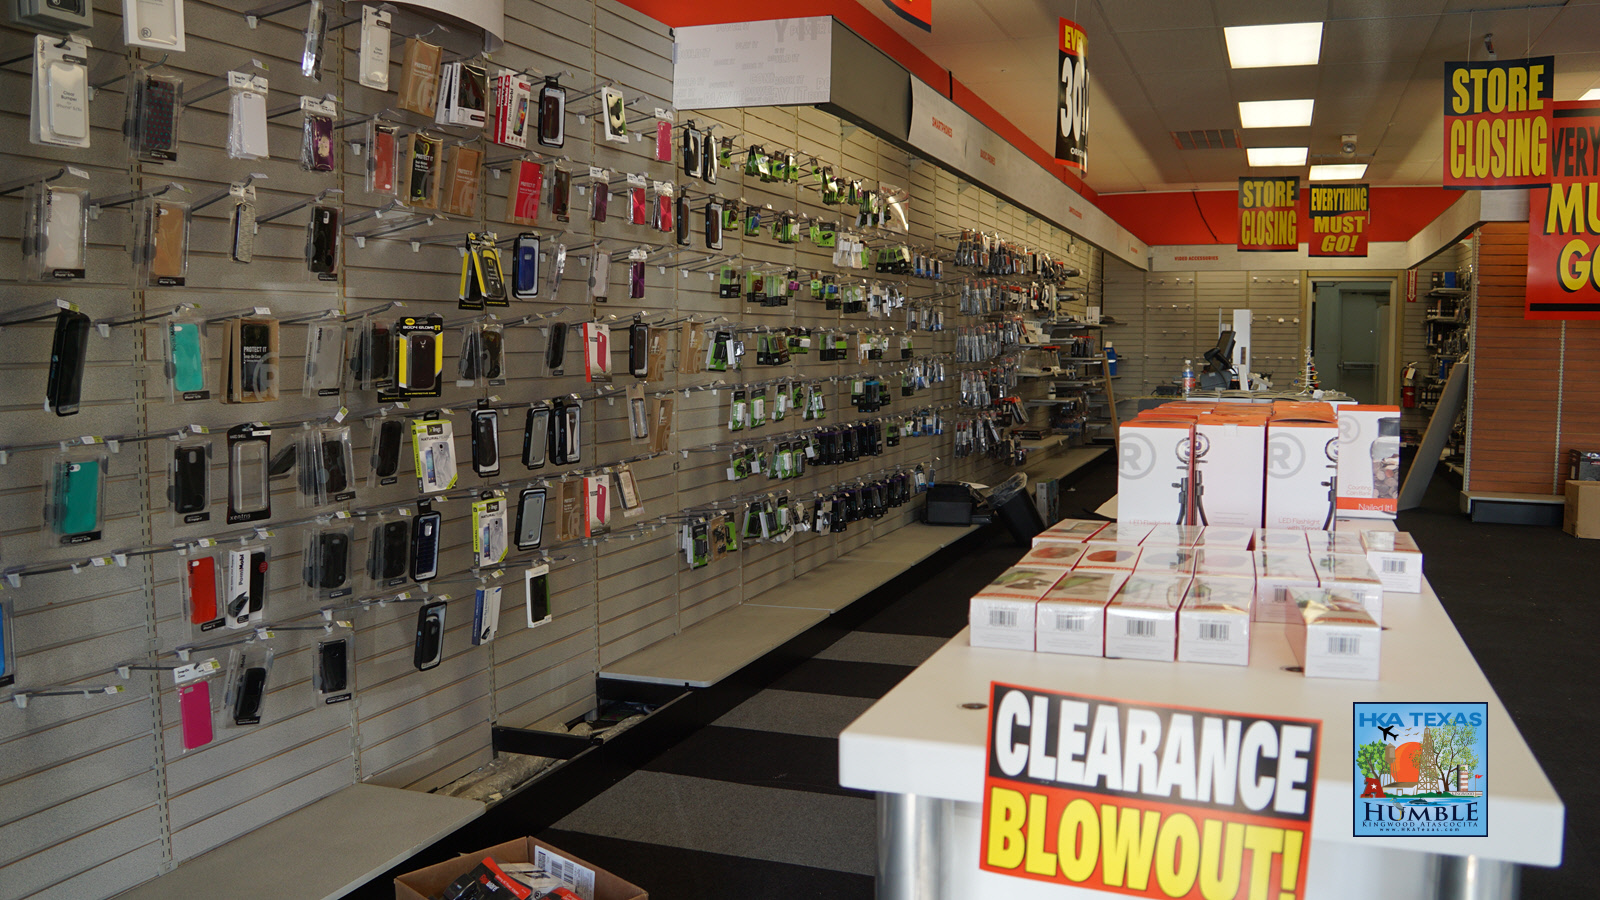 RadioShack closing over 1700 stores including Humble and